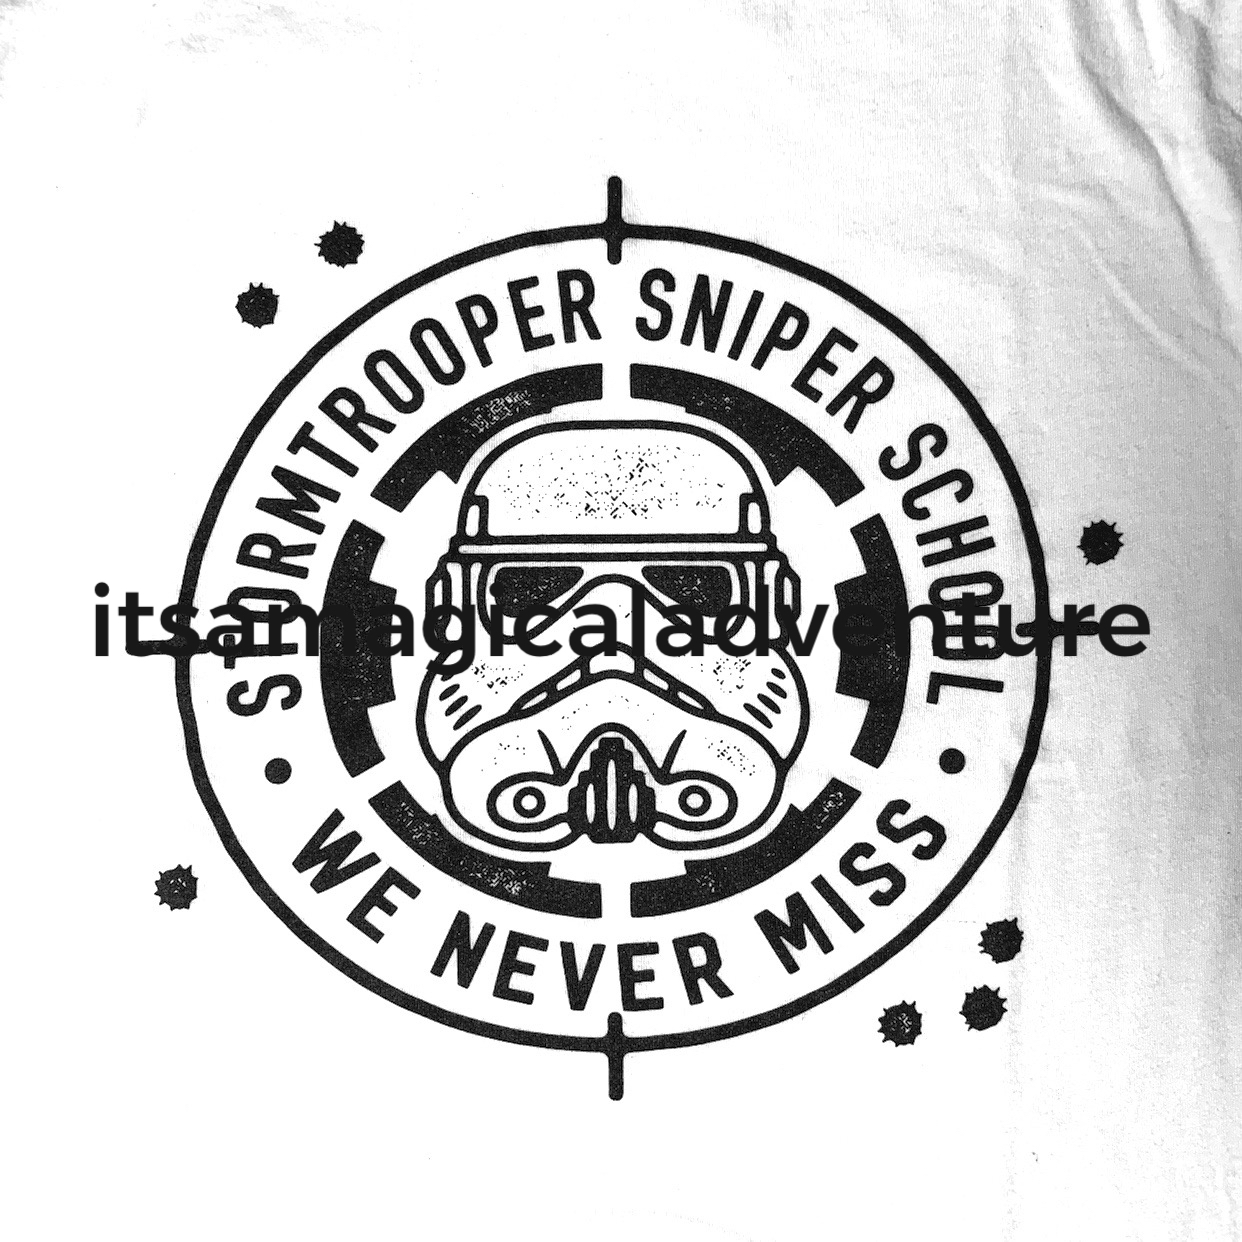 Storm Trooper Sniper School Tee